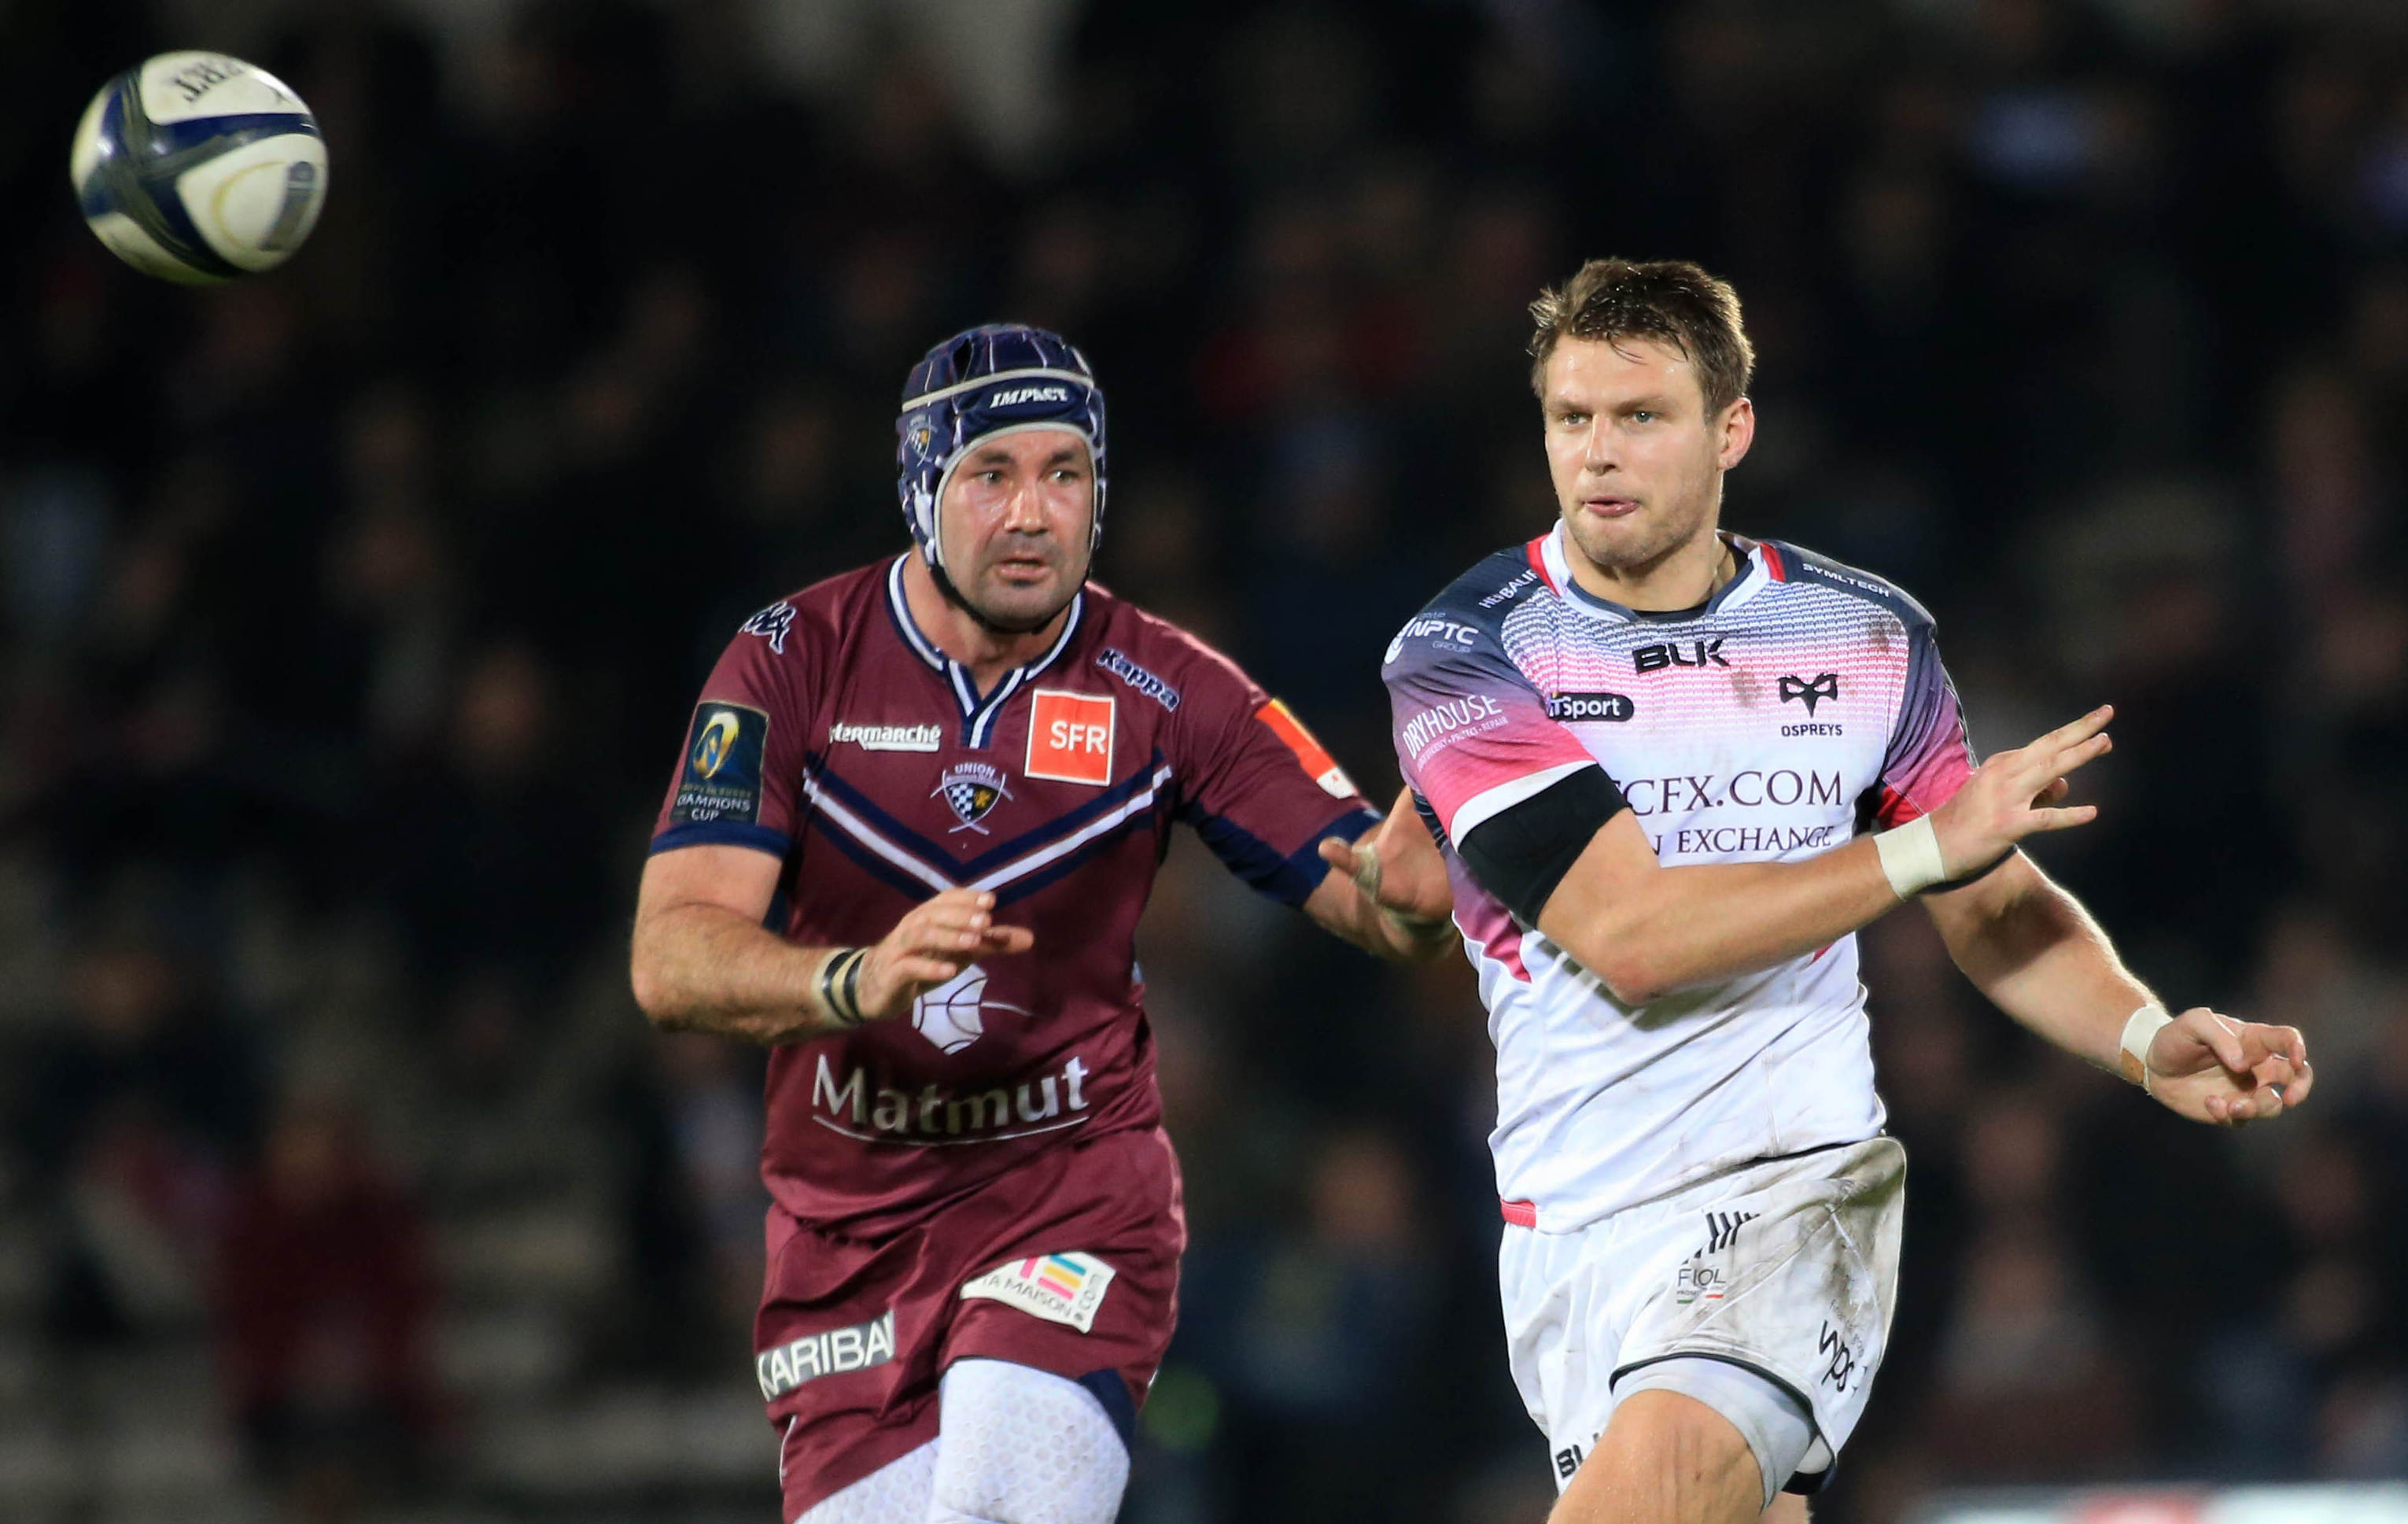 Rugby - Coupes d'Europe - Dan Biggar, le tube gallois continue